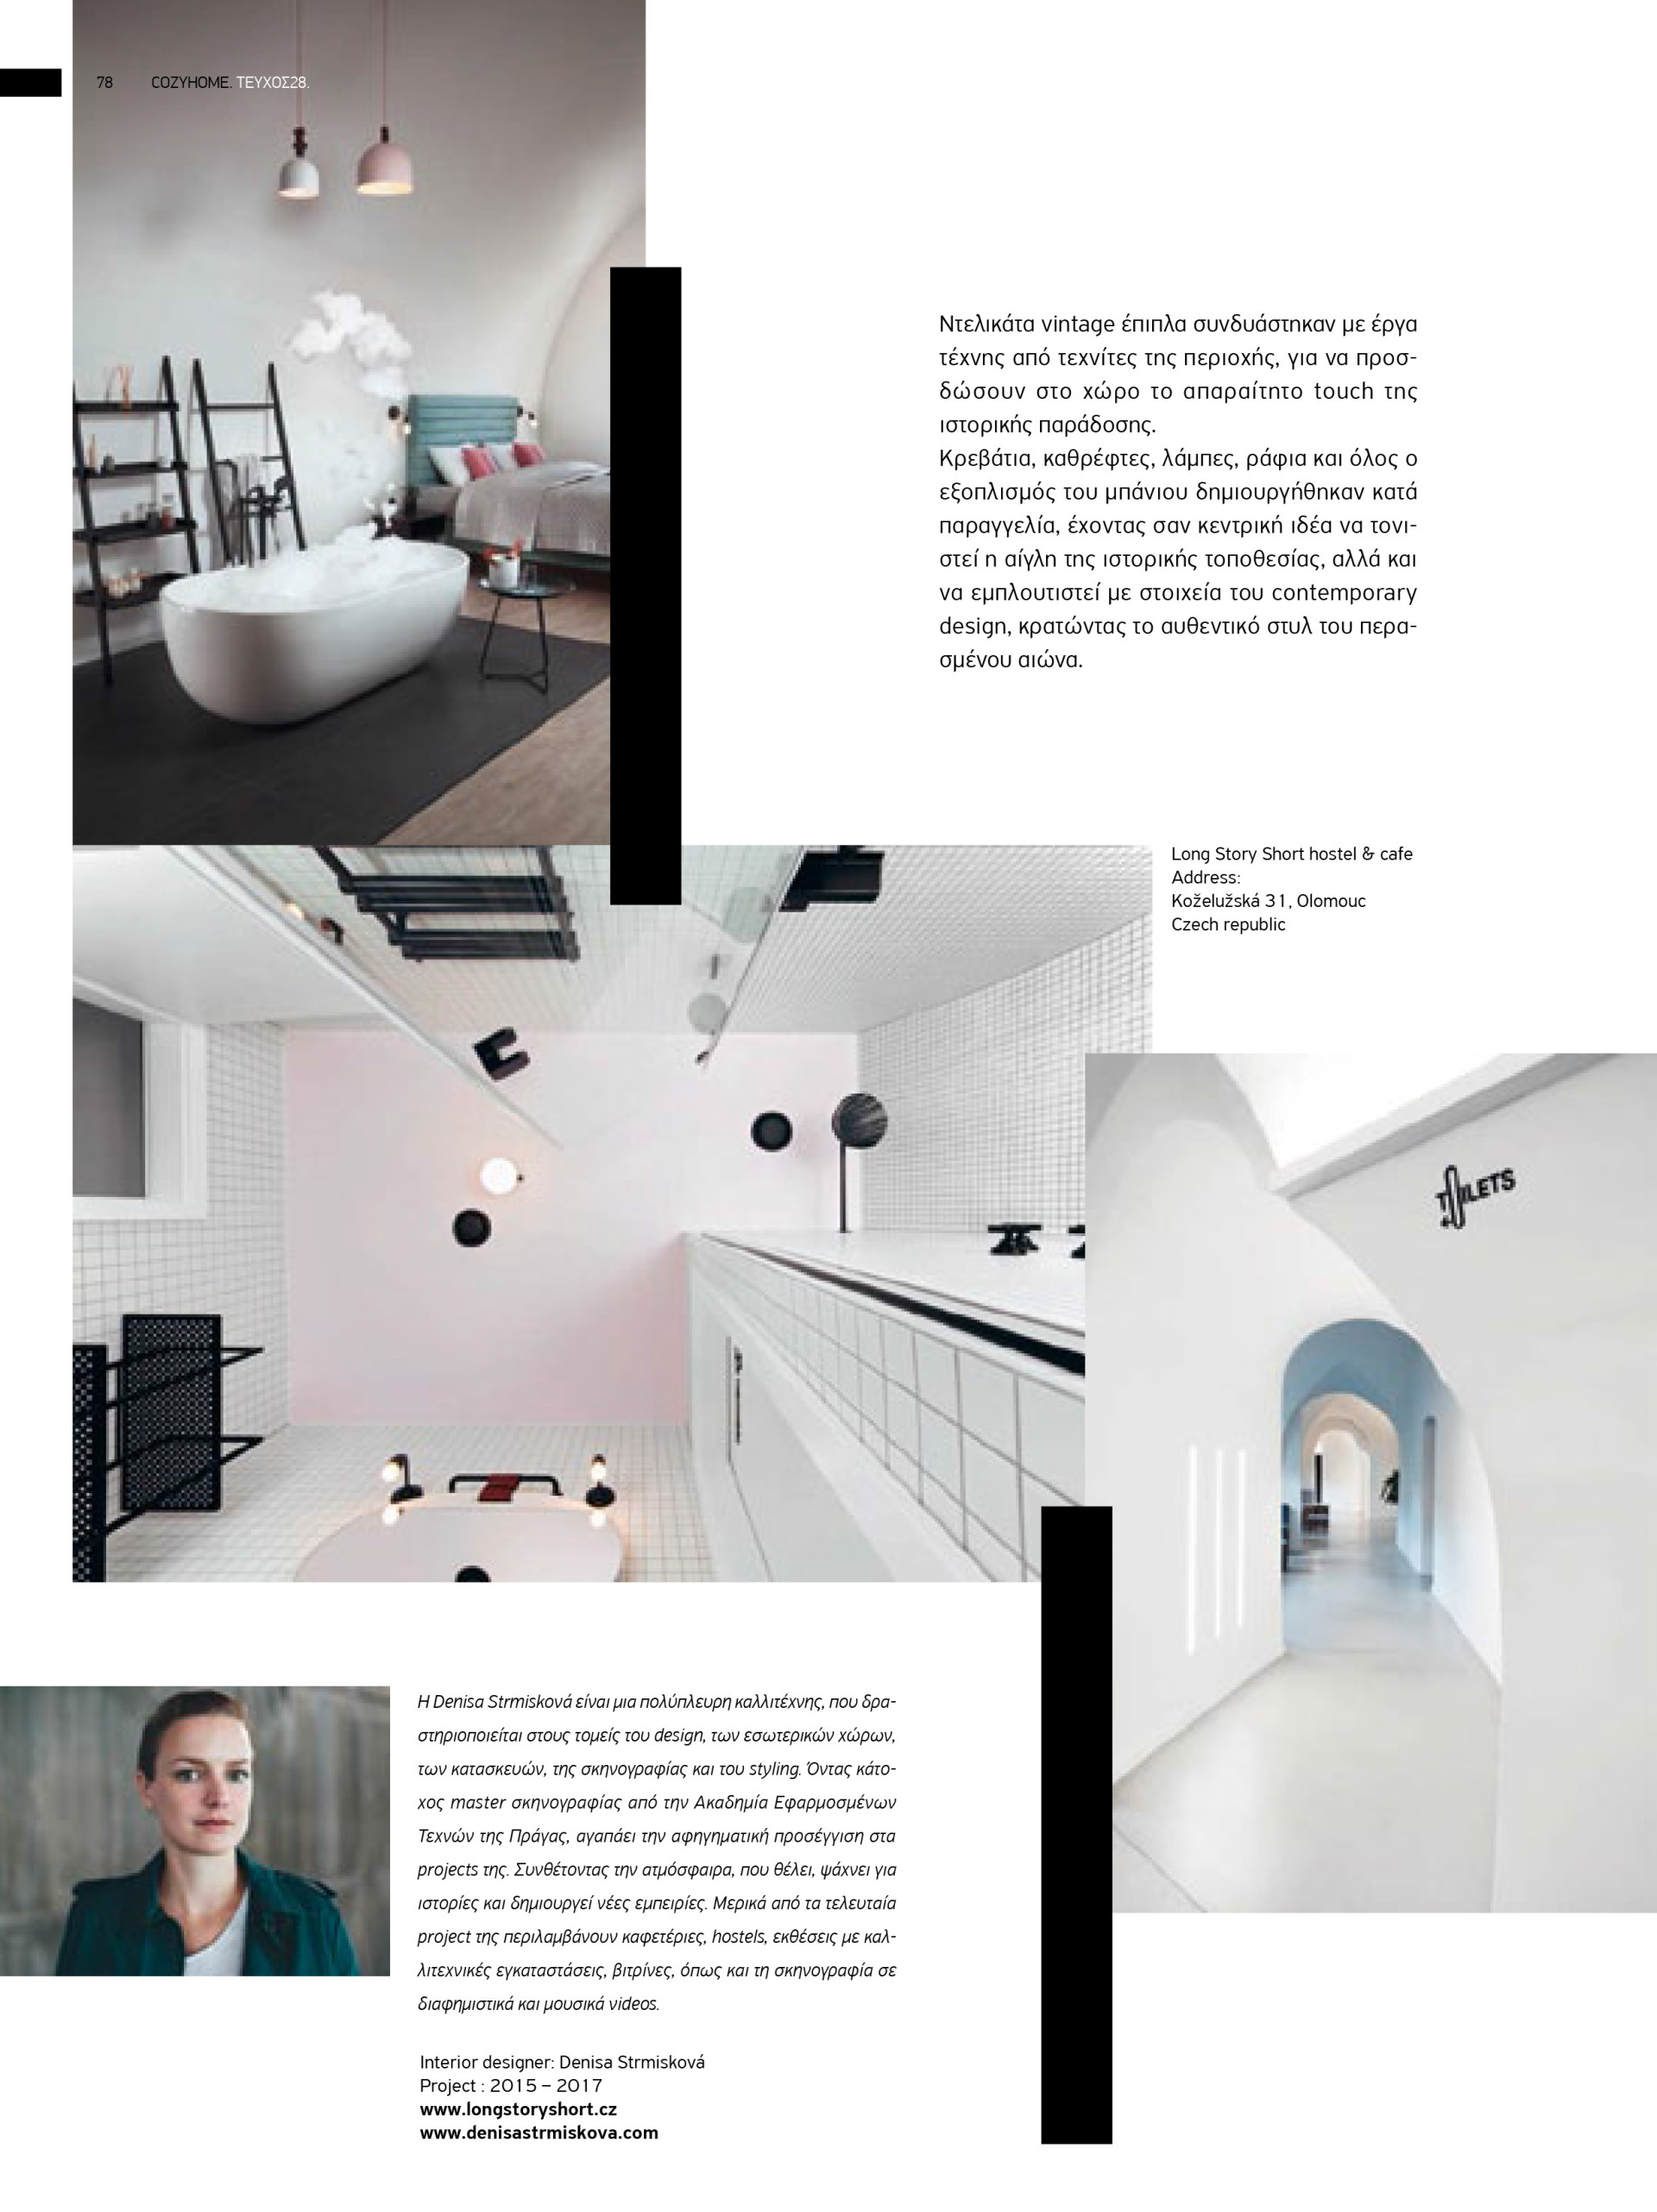 Denisa Strmiskova Studio | spatial design COZY HOME 12/2017